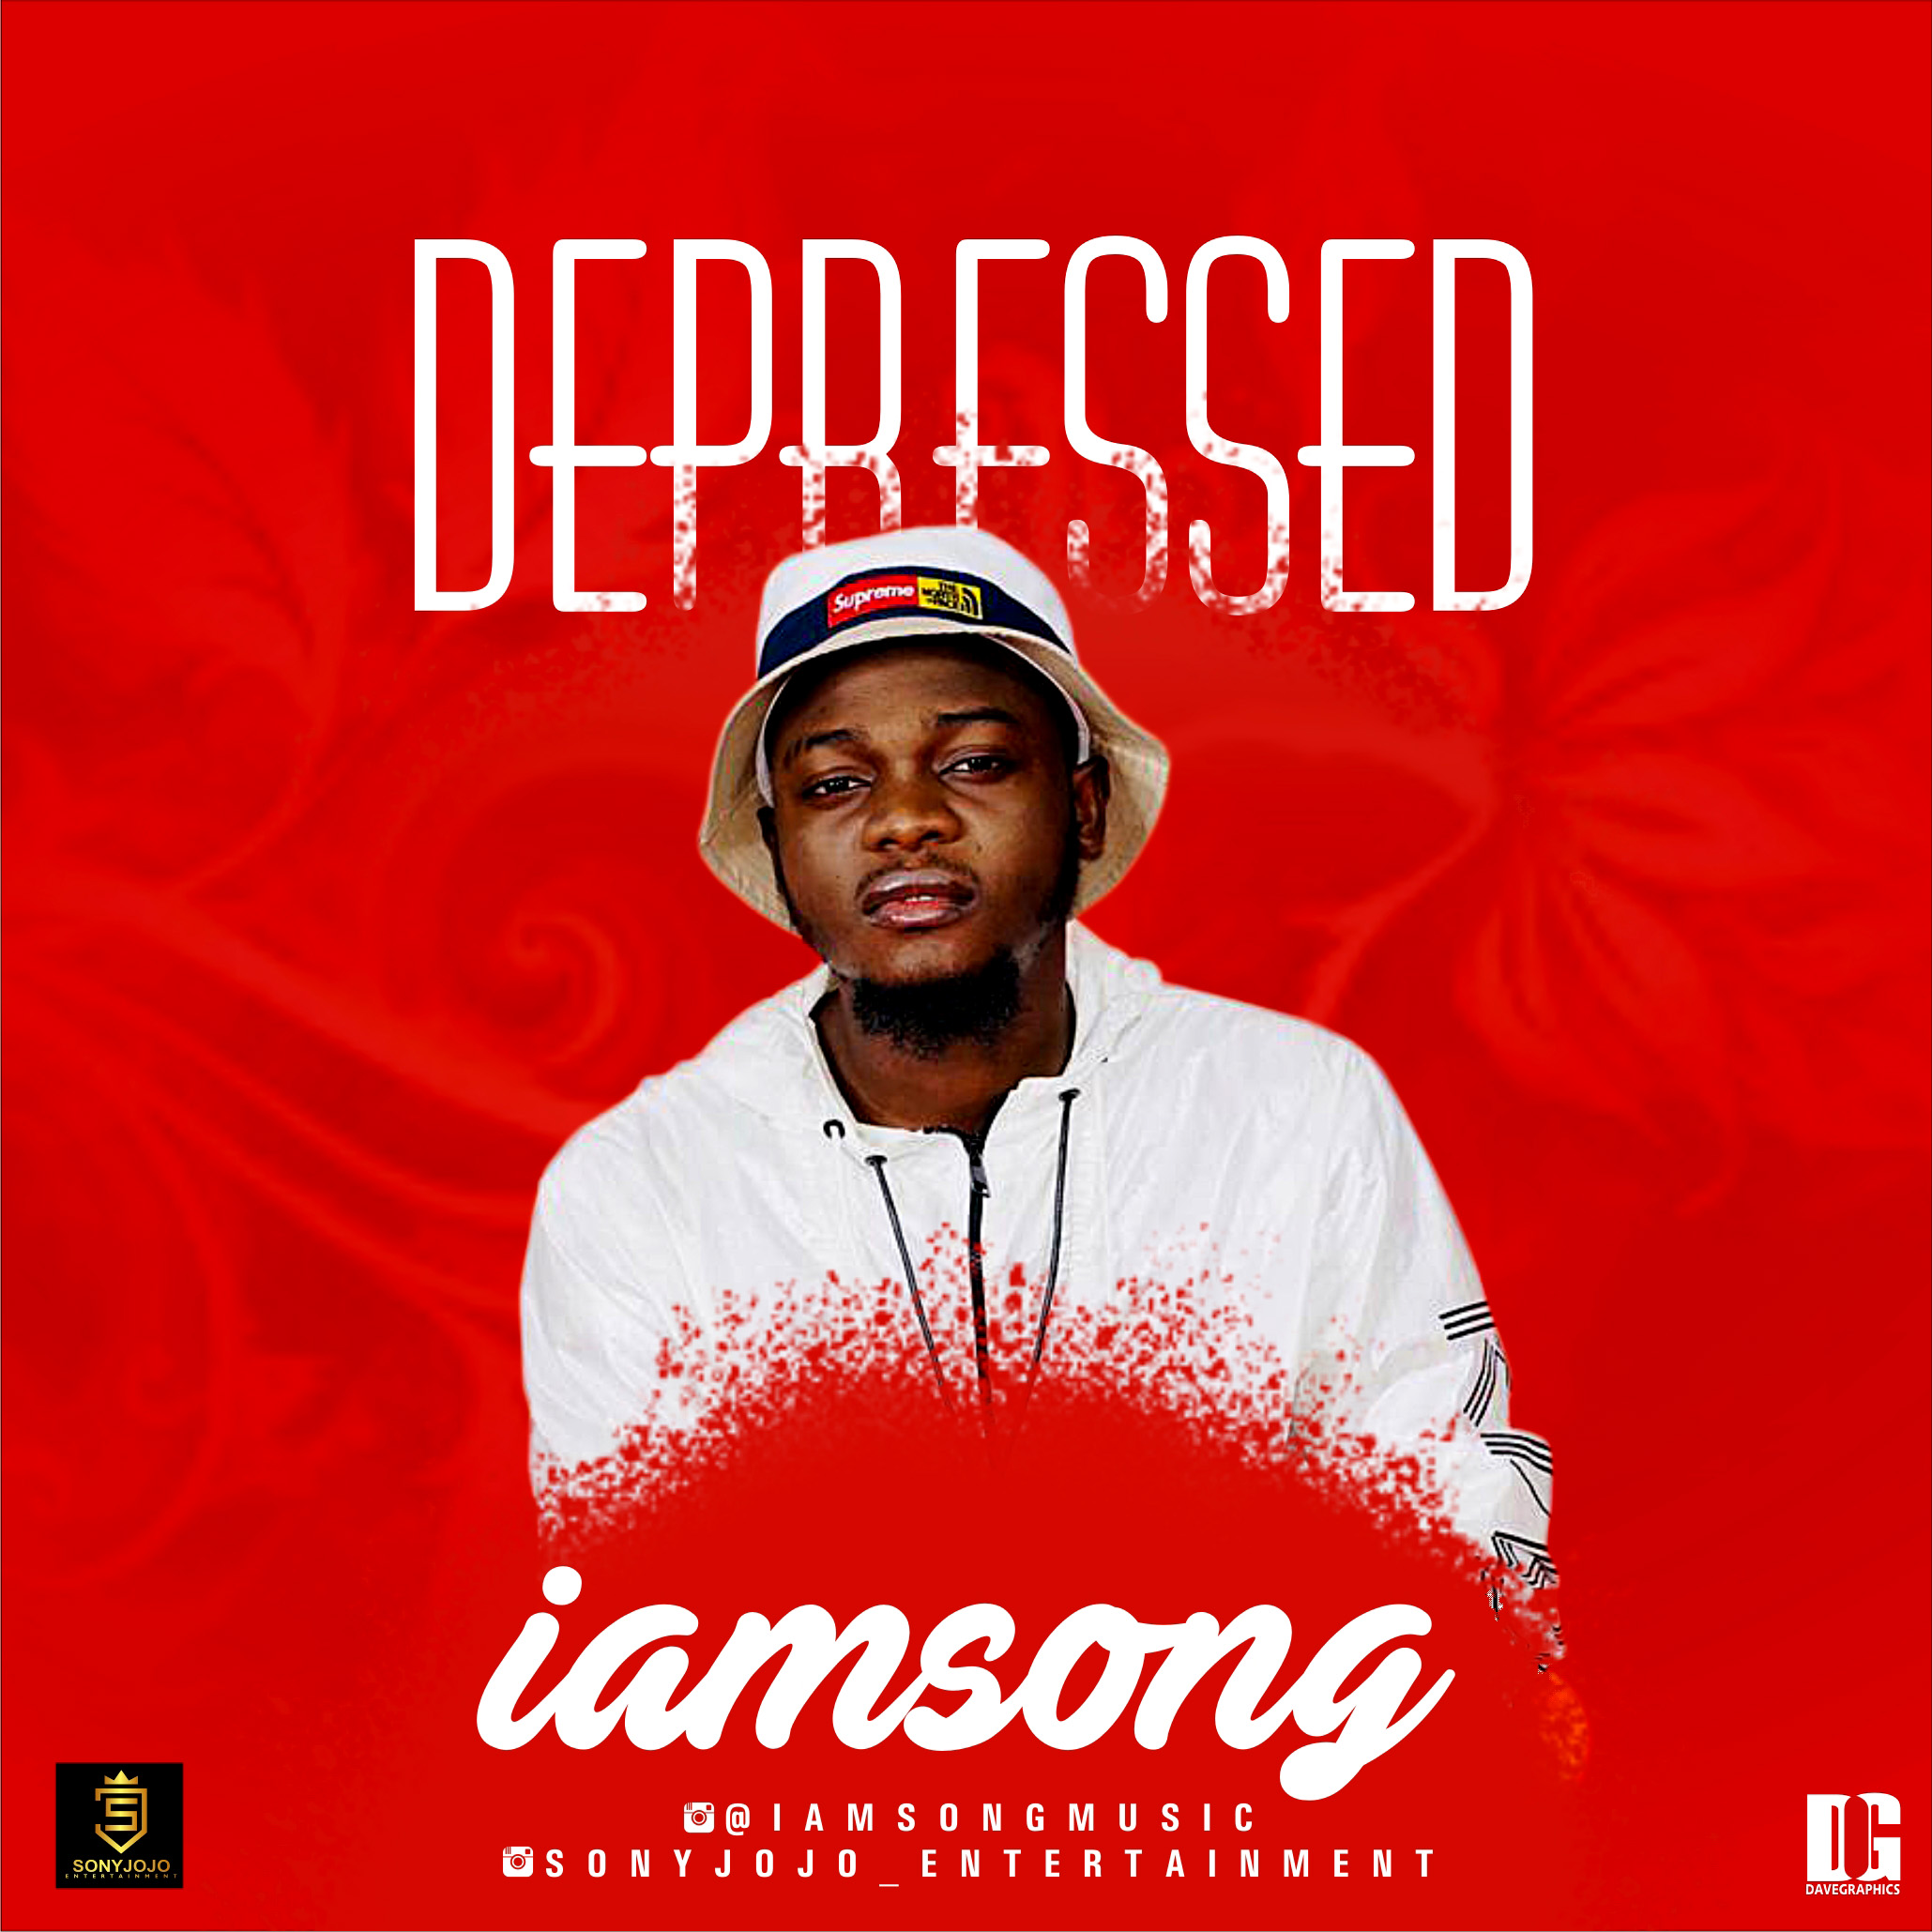 Photo of New Music Video- Depressed by IamSong